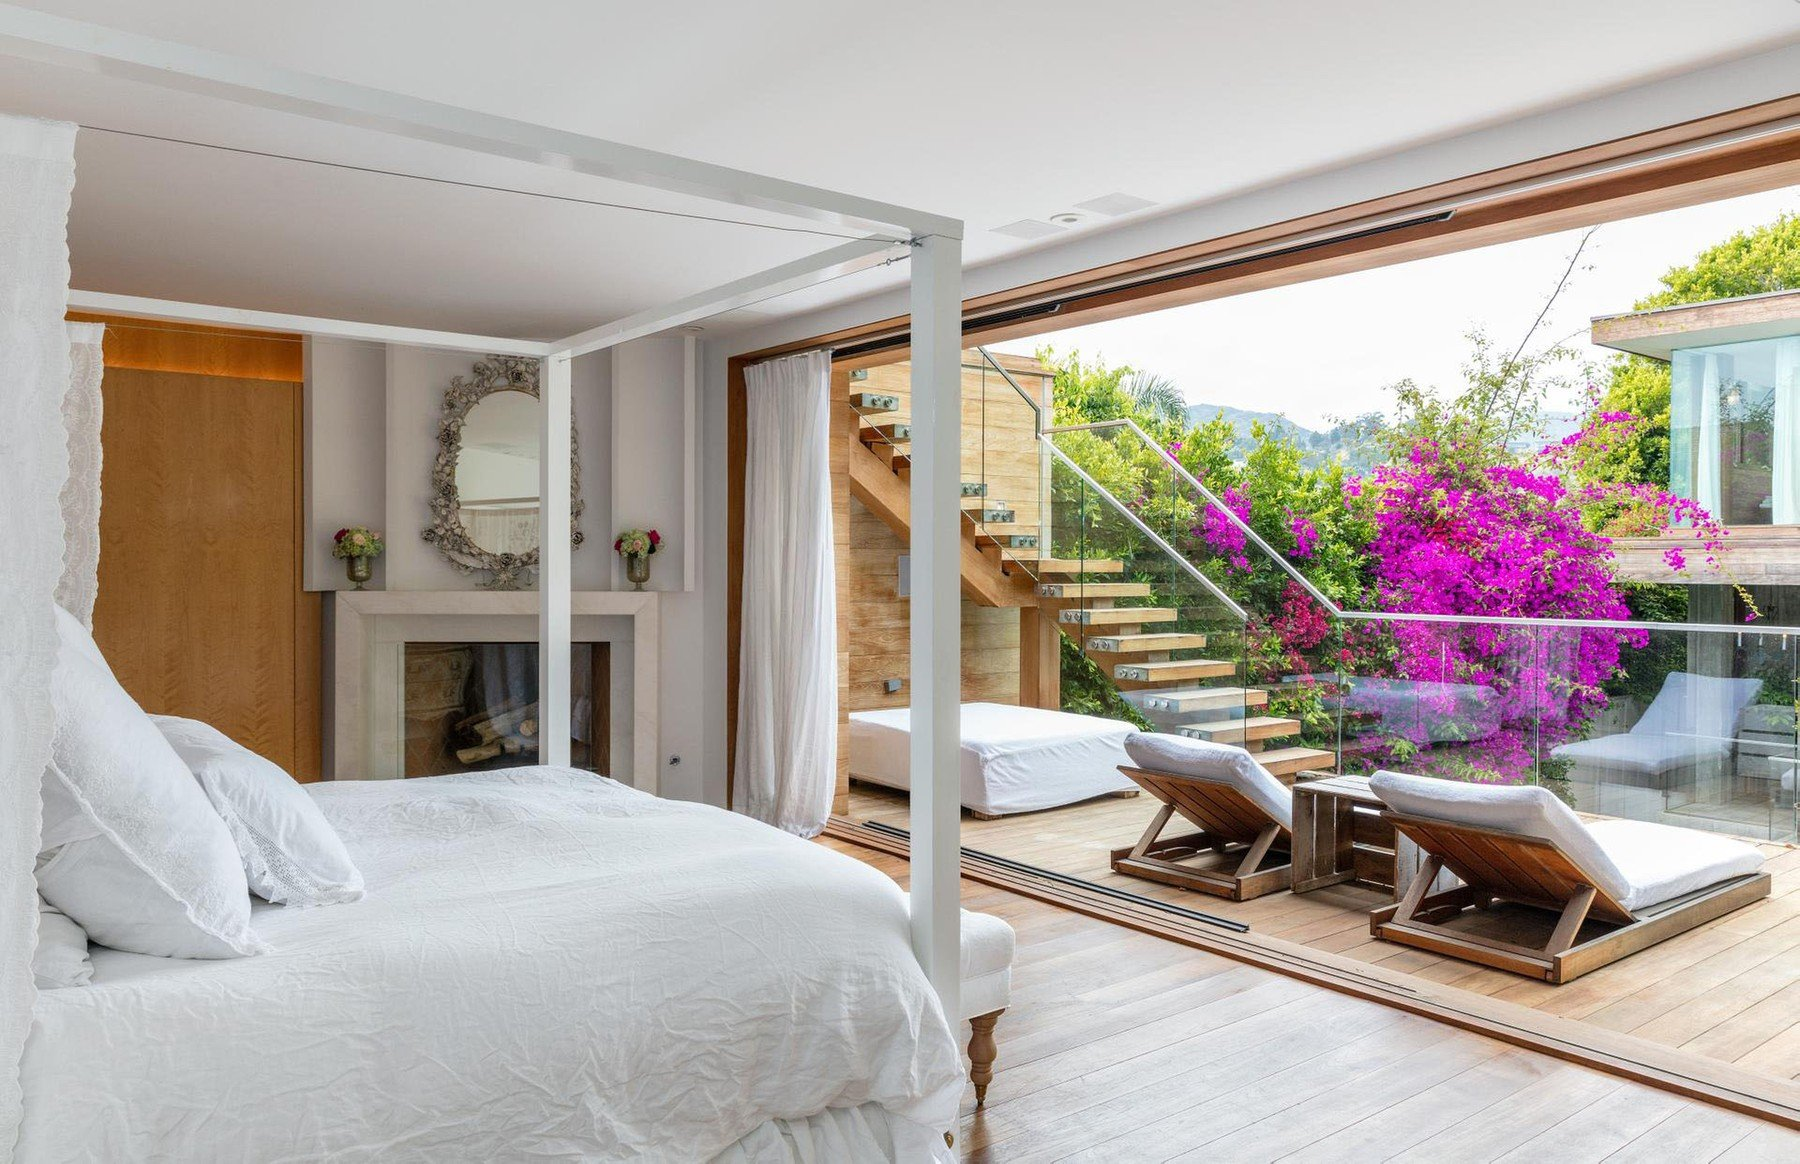 One-time 'Baywatch' babe Pamela Anderson has put her Malibu home up for lease at ,000-a-month.  The blonde bombshell has owned the Malibu Colony property for more than a decade and tried to sell it about five years ago. It's two structures separated by a swimming pool. The 5,500 square foot property has been designed by architect Philip Vertoch. The interior was designed by Pamela and interior designer Josh Chryssanthou. Inside there's a chef's kitchen and the master bedroom suite has its own fireplace and soaking tub and a patio that overlooks the pool. Including the guesthouse, which has its own hot tub and custom fire pit, there are four bedrooms and three bathrooms., Image: 386667530, License: Rights-managed, Restrictions: , Model Release: no, Credit line: Profimedia, IMP Features